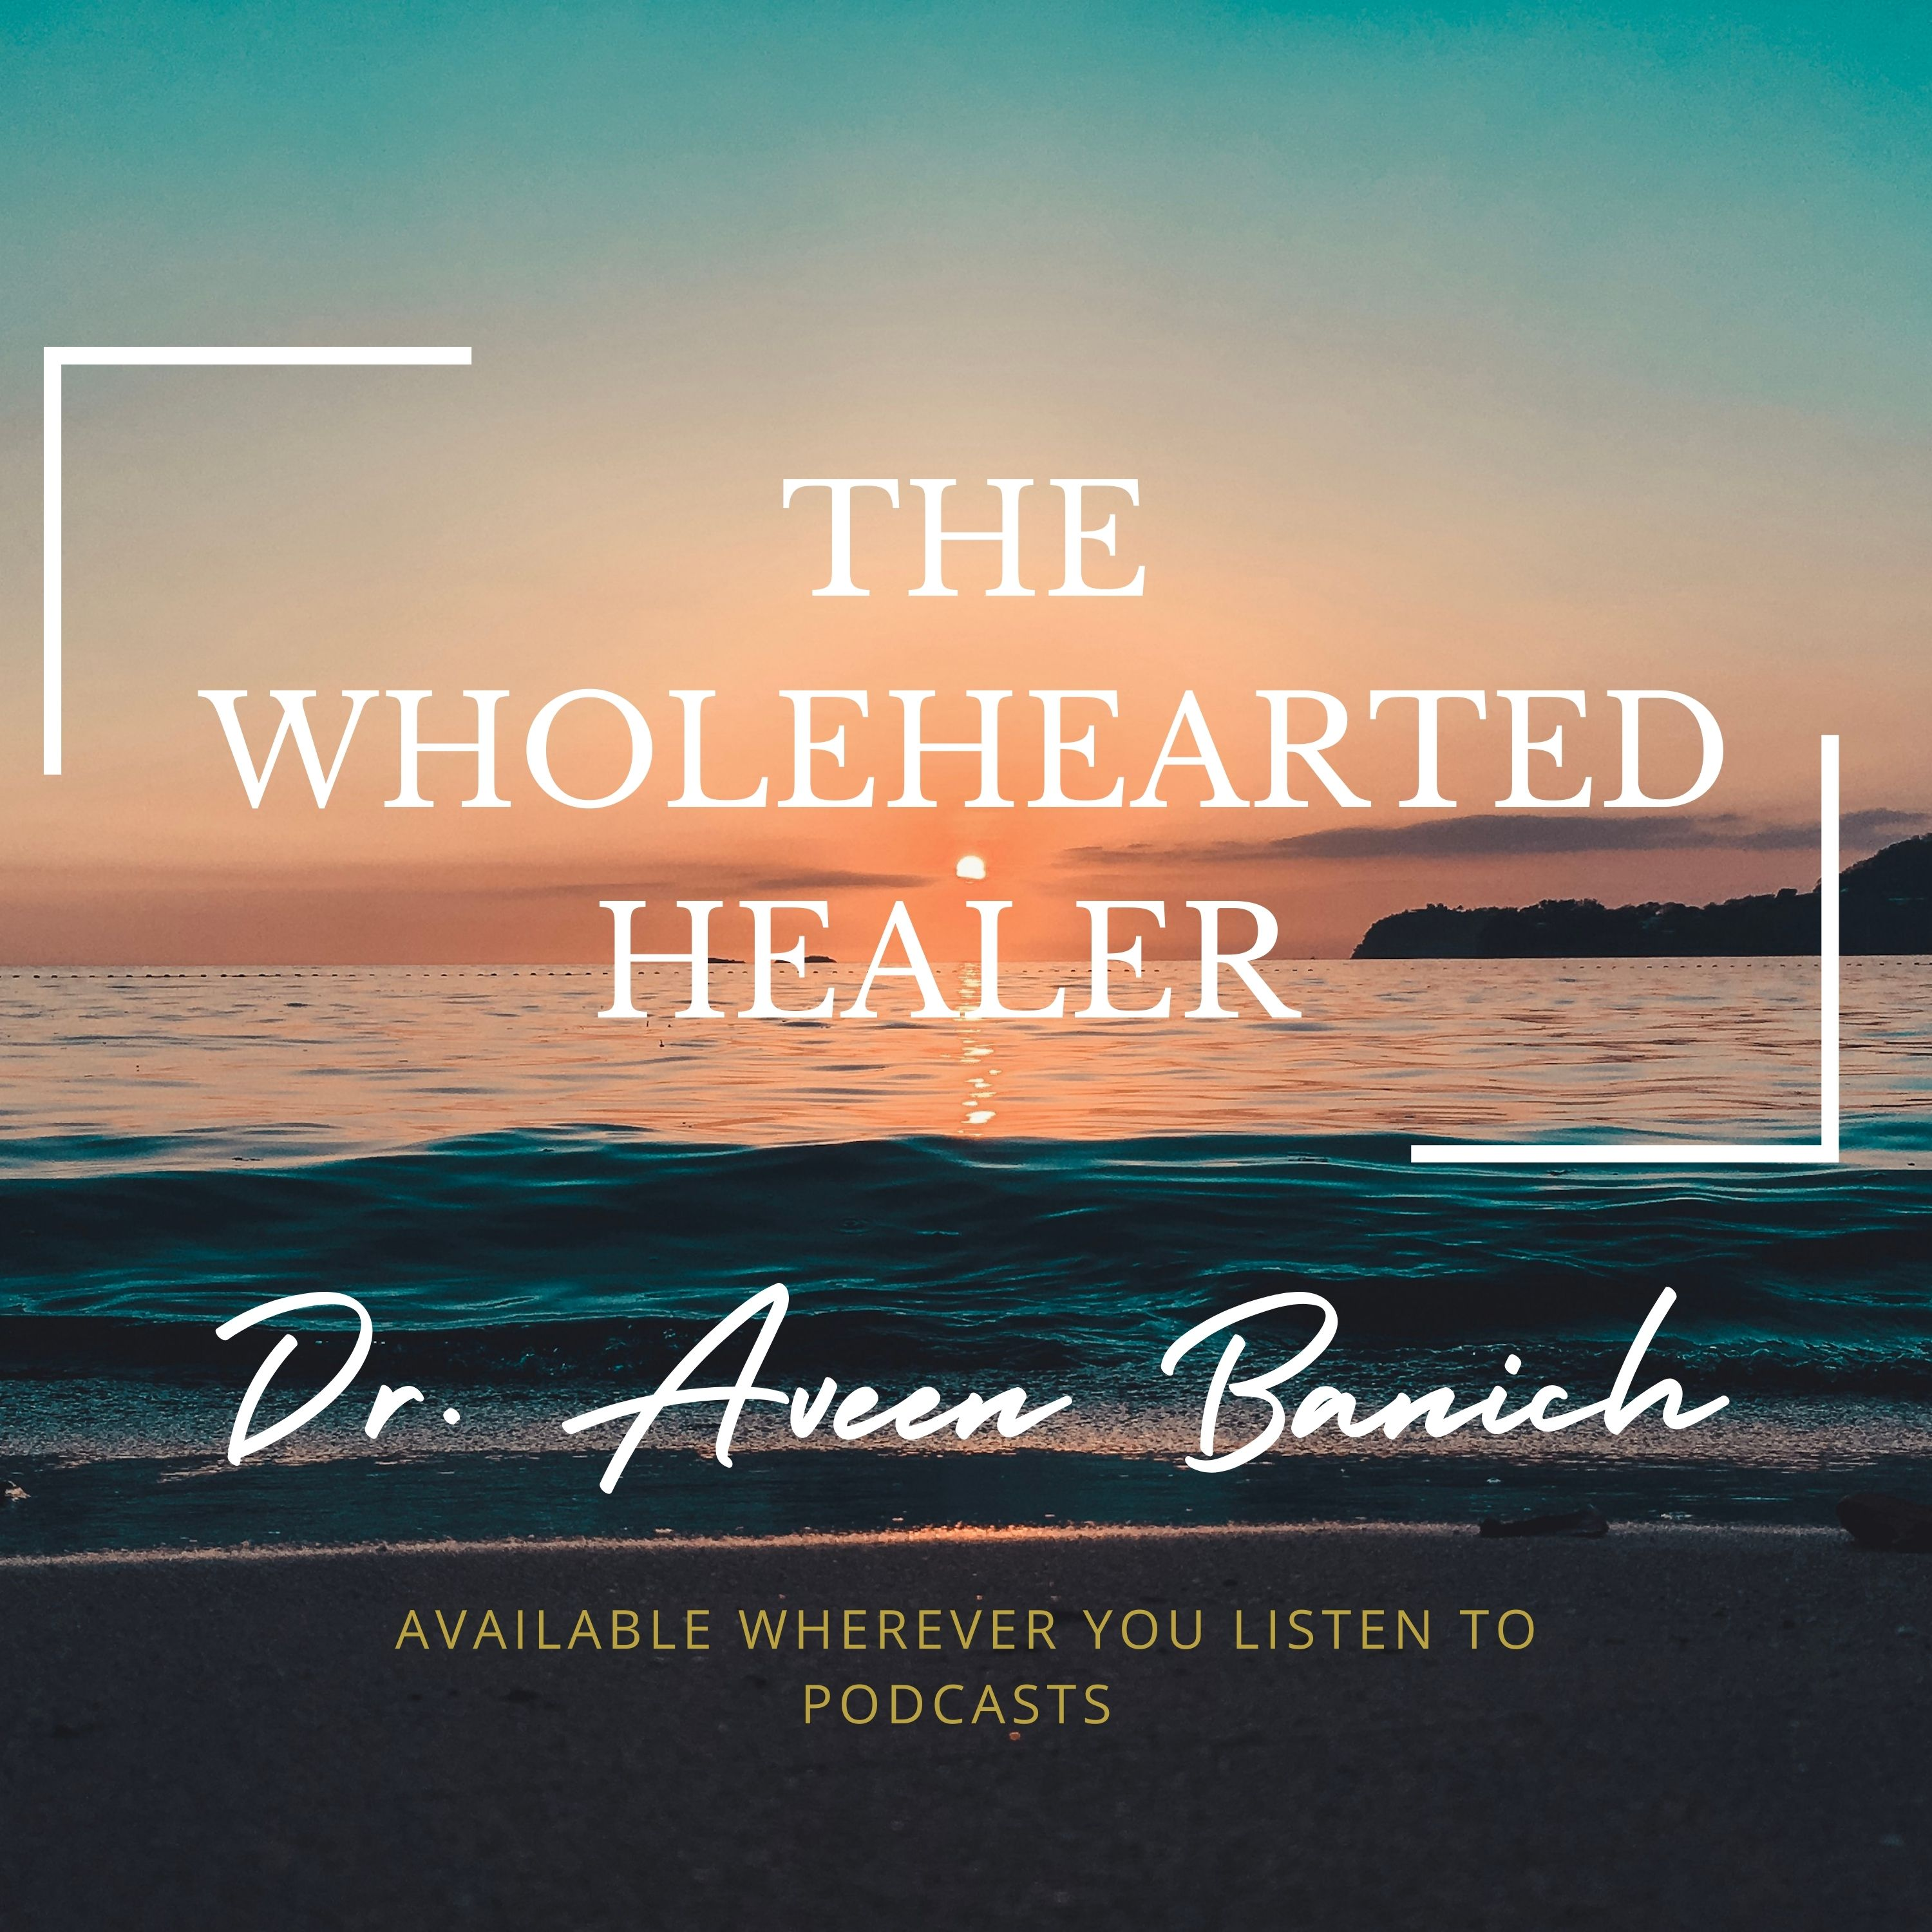 Artwork for podcast The WholeHearted Healer